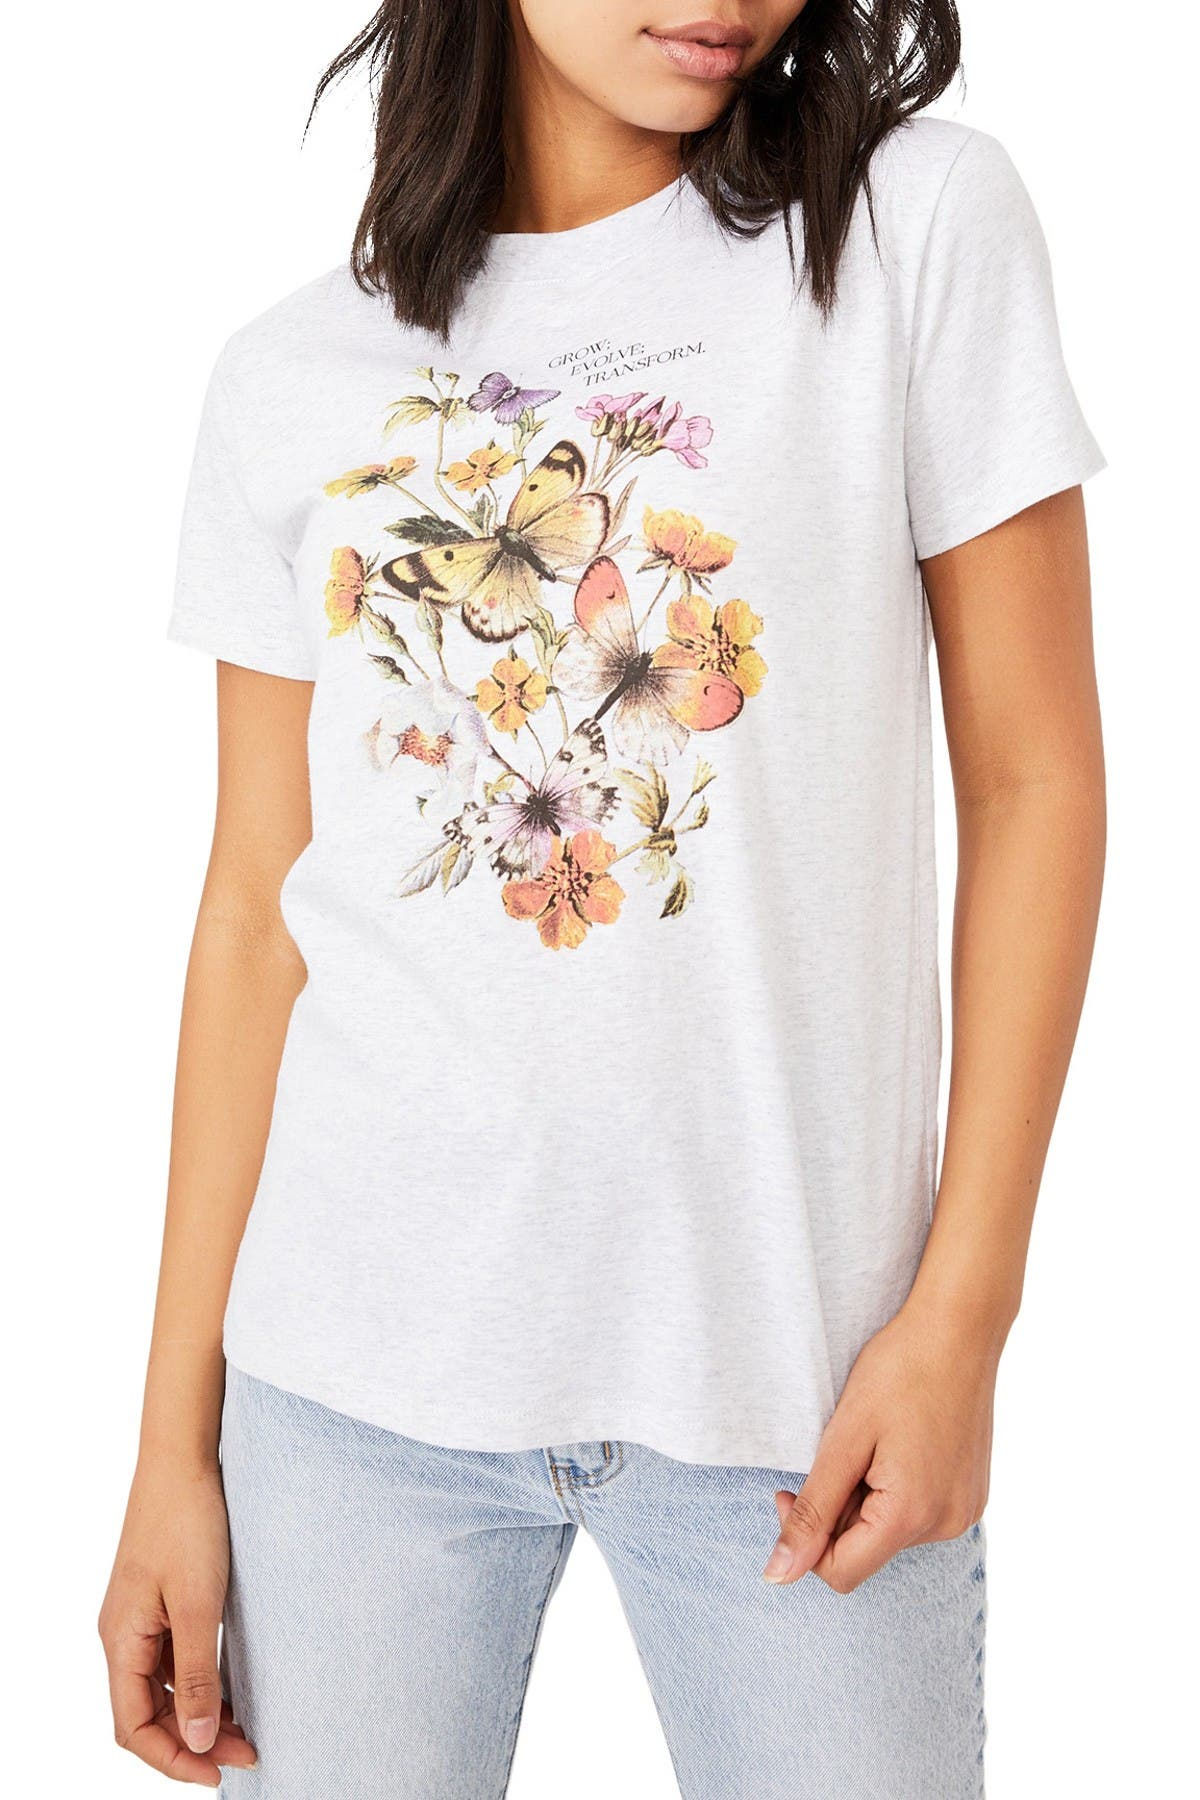 Image of Cotton On Classic Arts T-Shirt